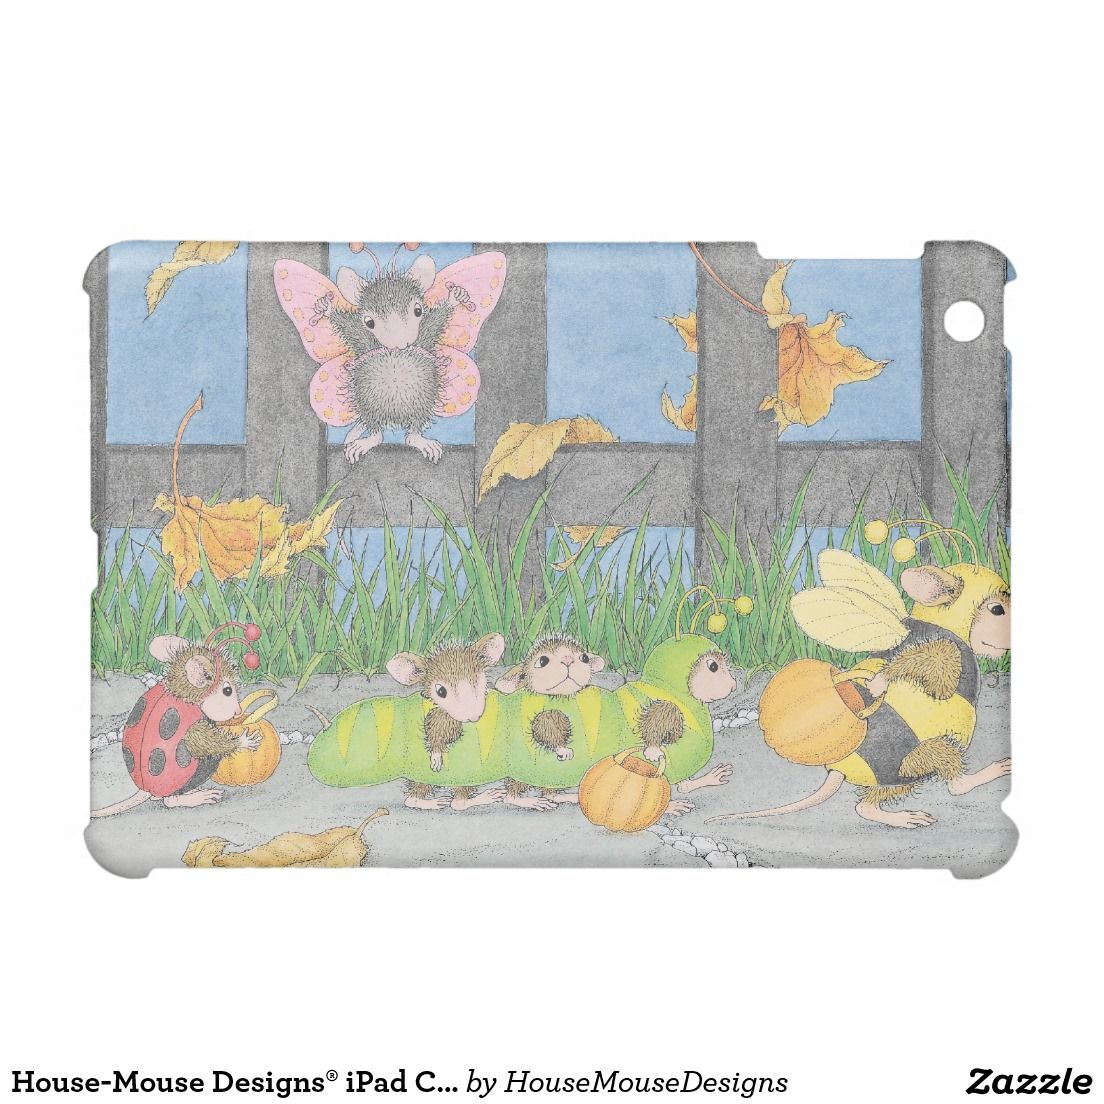 House-Mouse Designs® iPad Case http://www.zazzle.com/house_mouse_designs_ipad_case-256044676820646939?rf=238588924226571373